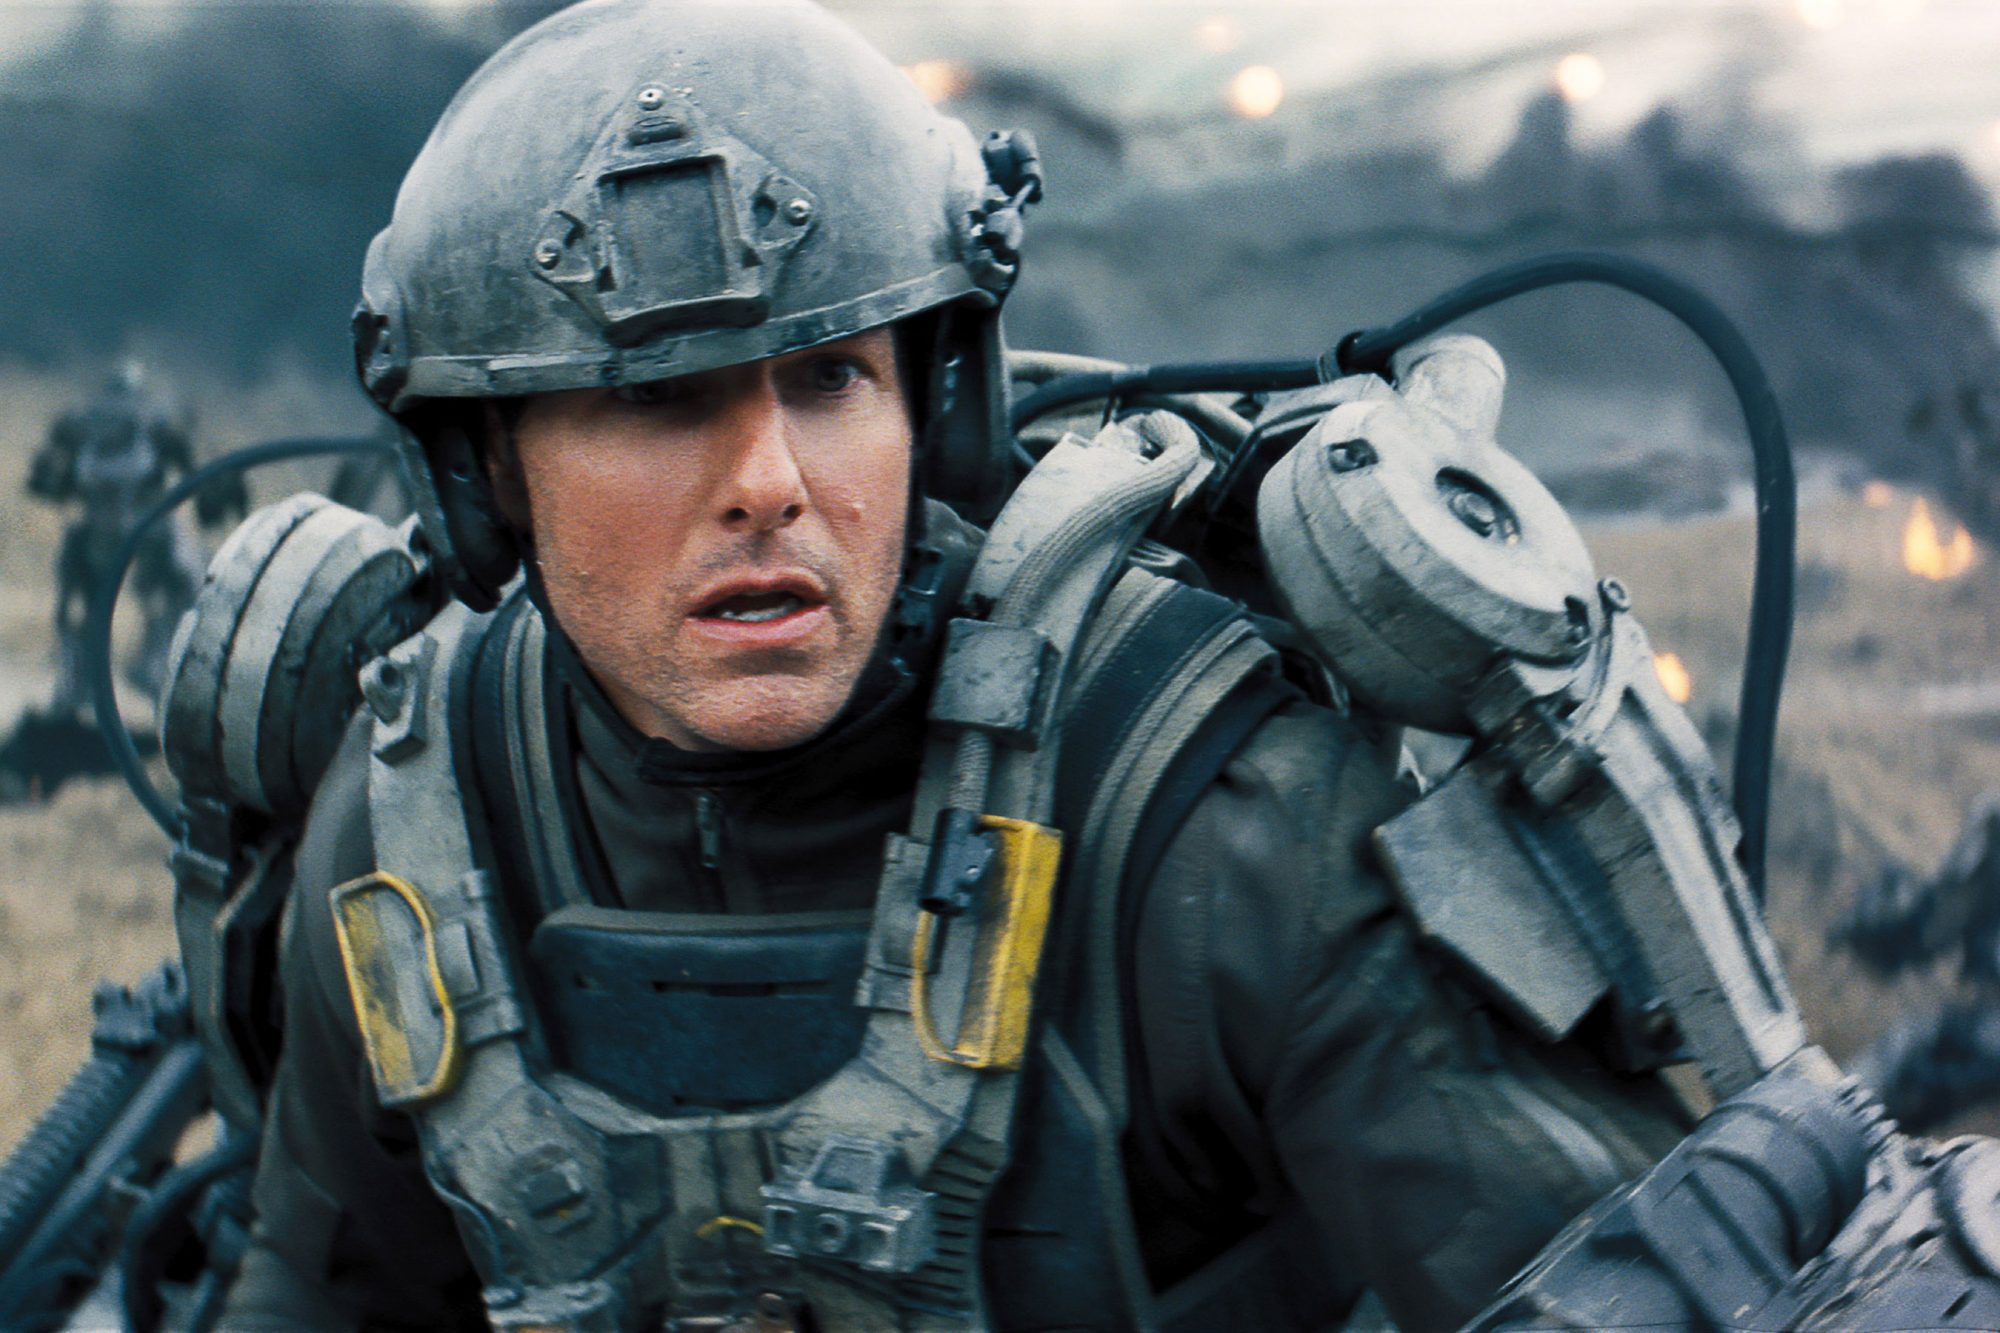 EDGE OF TOMORROW, Tom Cruise, 2014. ©Warner Bros. Pictures/courtesy Everett Collection